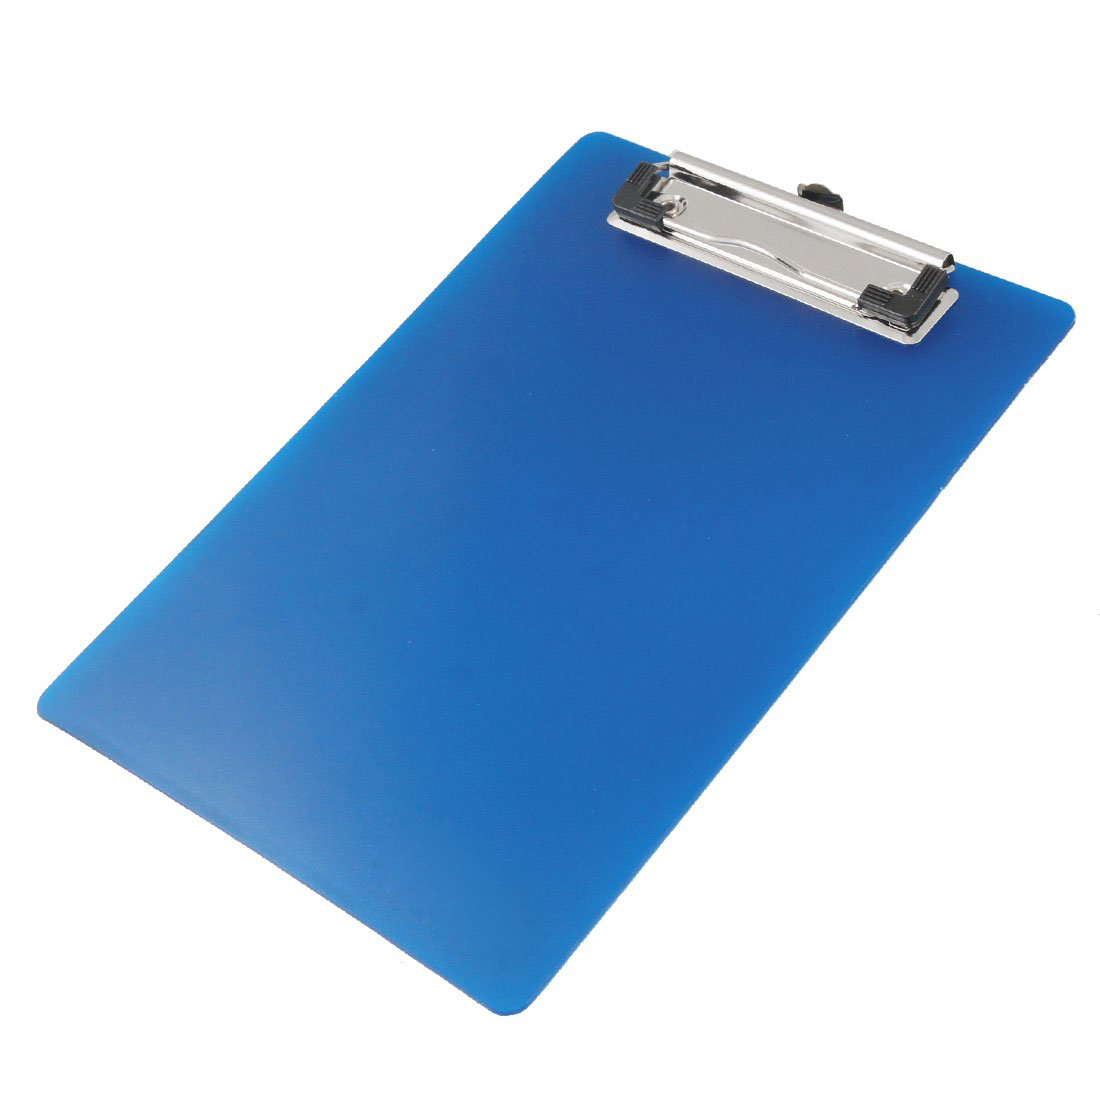 new and hot office a5 paper holding file clamp clip board bluechina mainland a5 clipboard clip boards